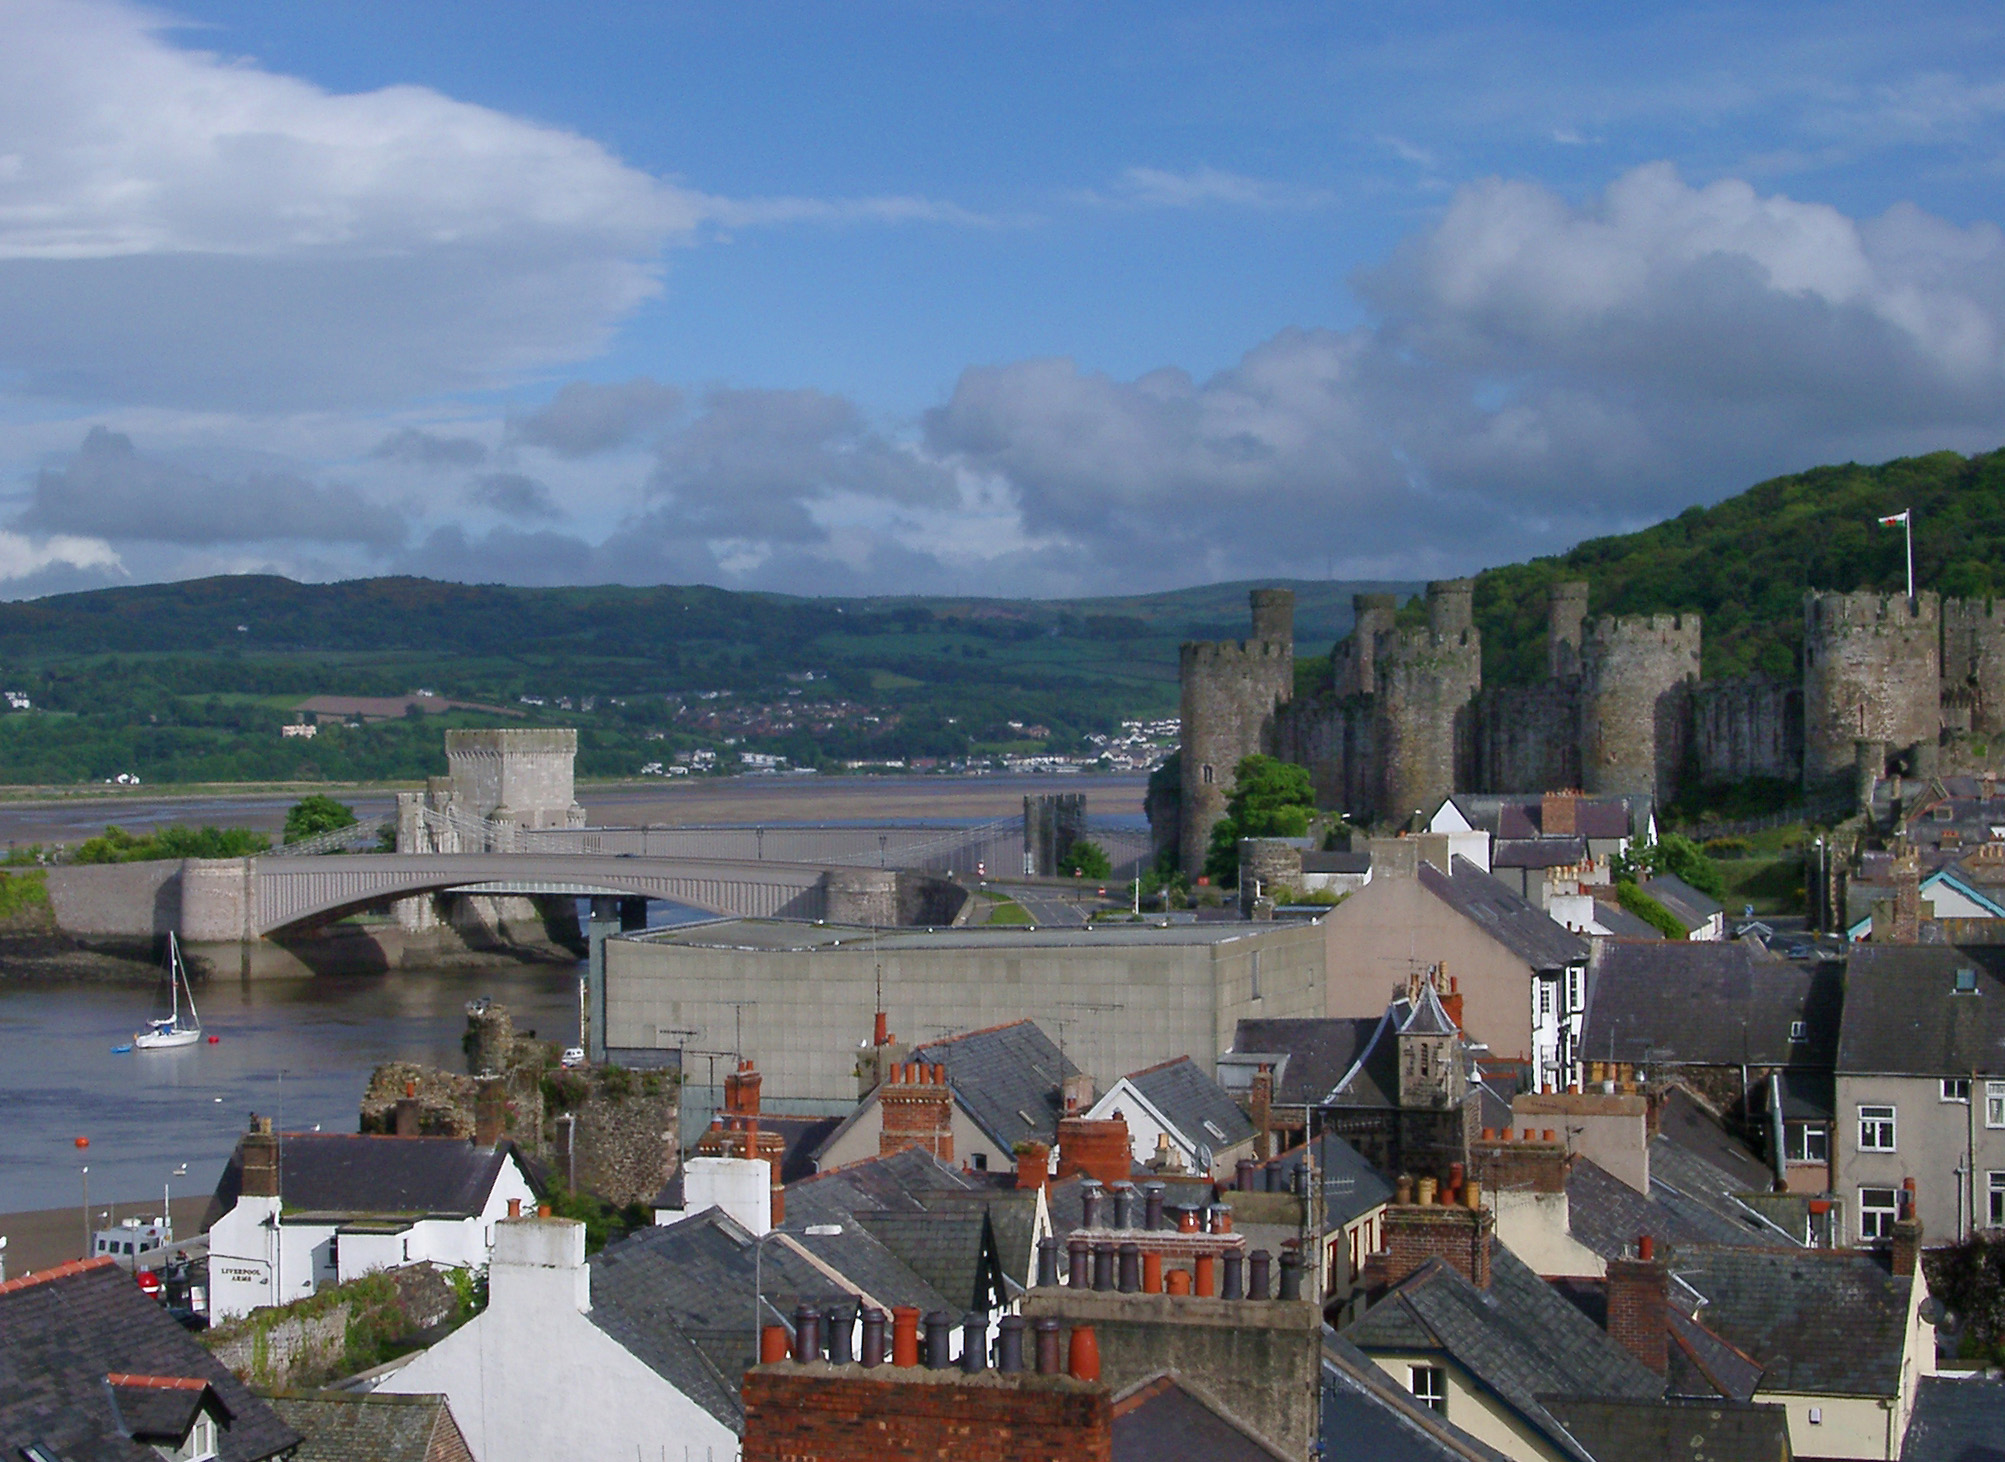 Panorama View of Various Building Rooftops and Ancient Medieval Castle at Conwy, Wales.